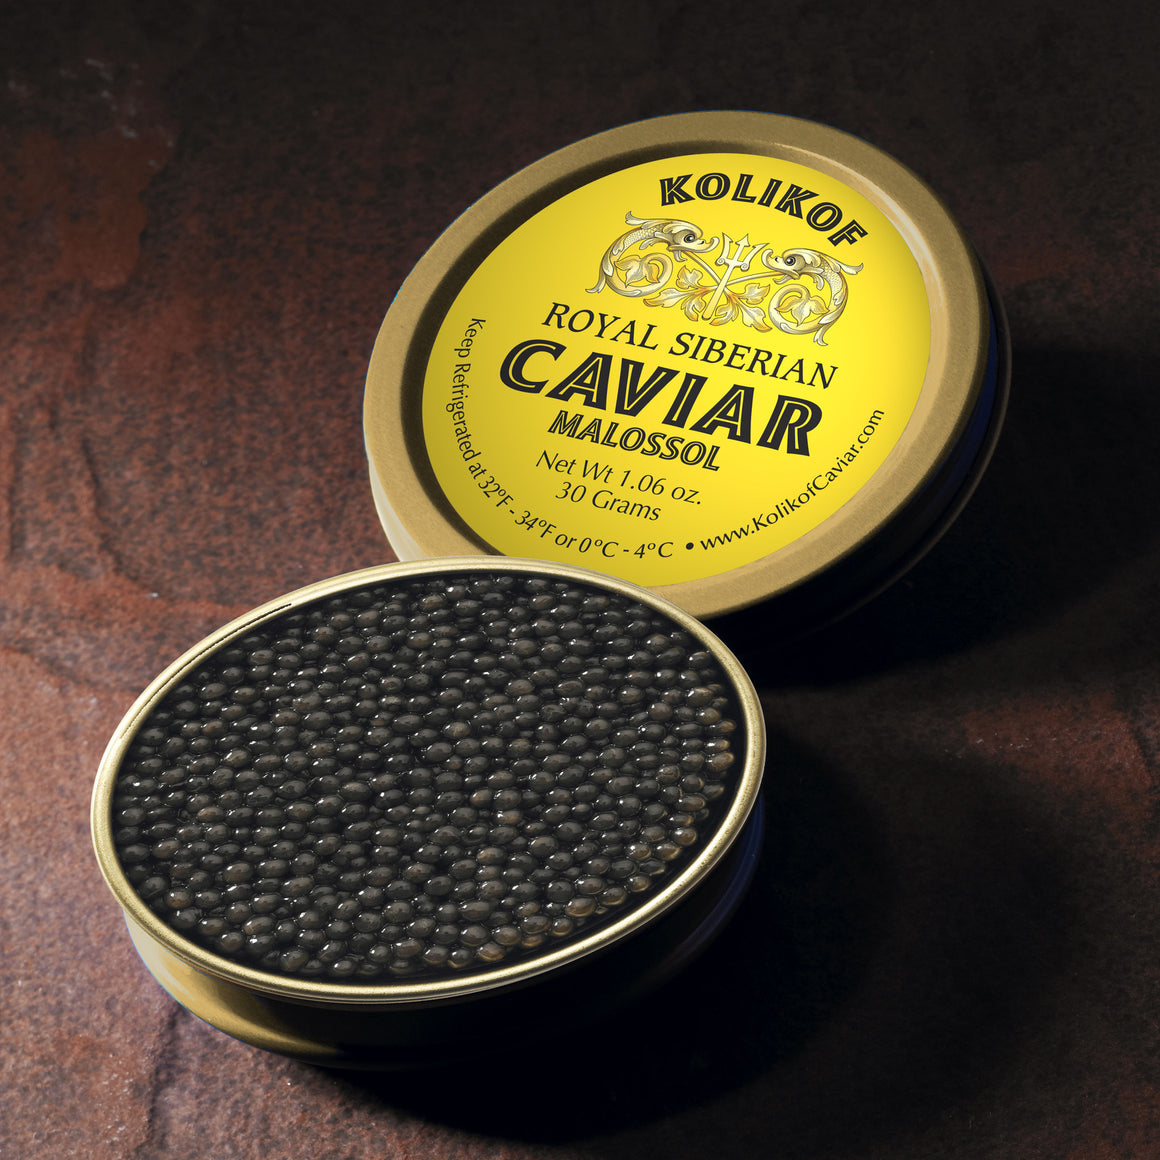 Kolikof Caviar is choice of Private Chefs. Buy the Finest Siberian Sturgeon Caviar Online.